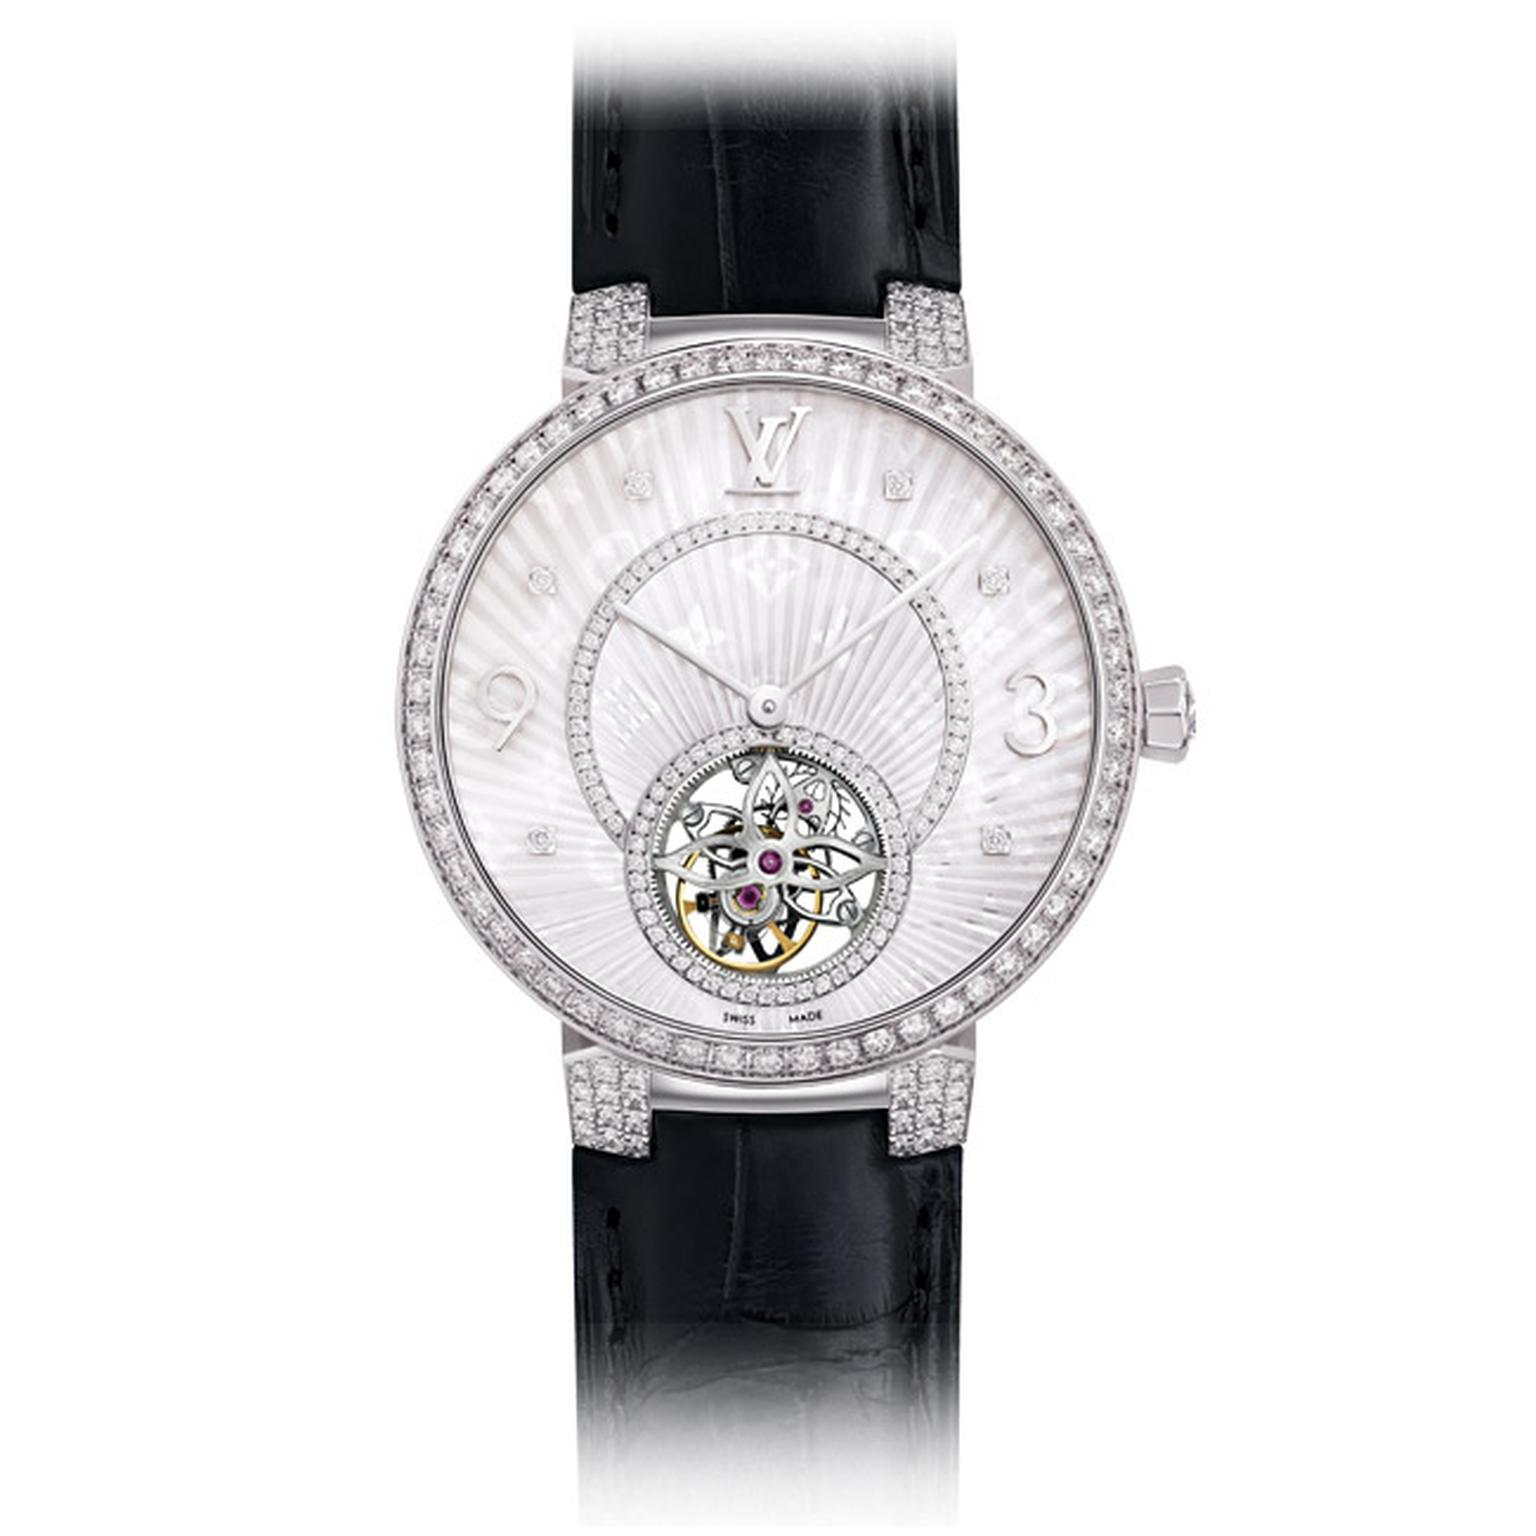 LV-Monogram-Tourbillon-main